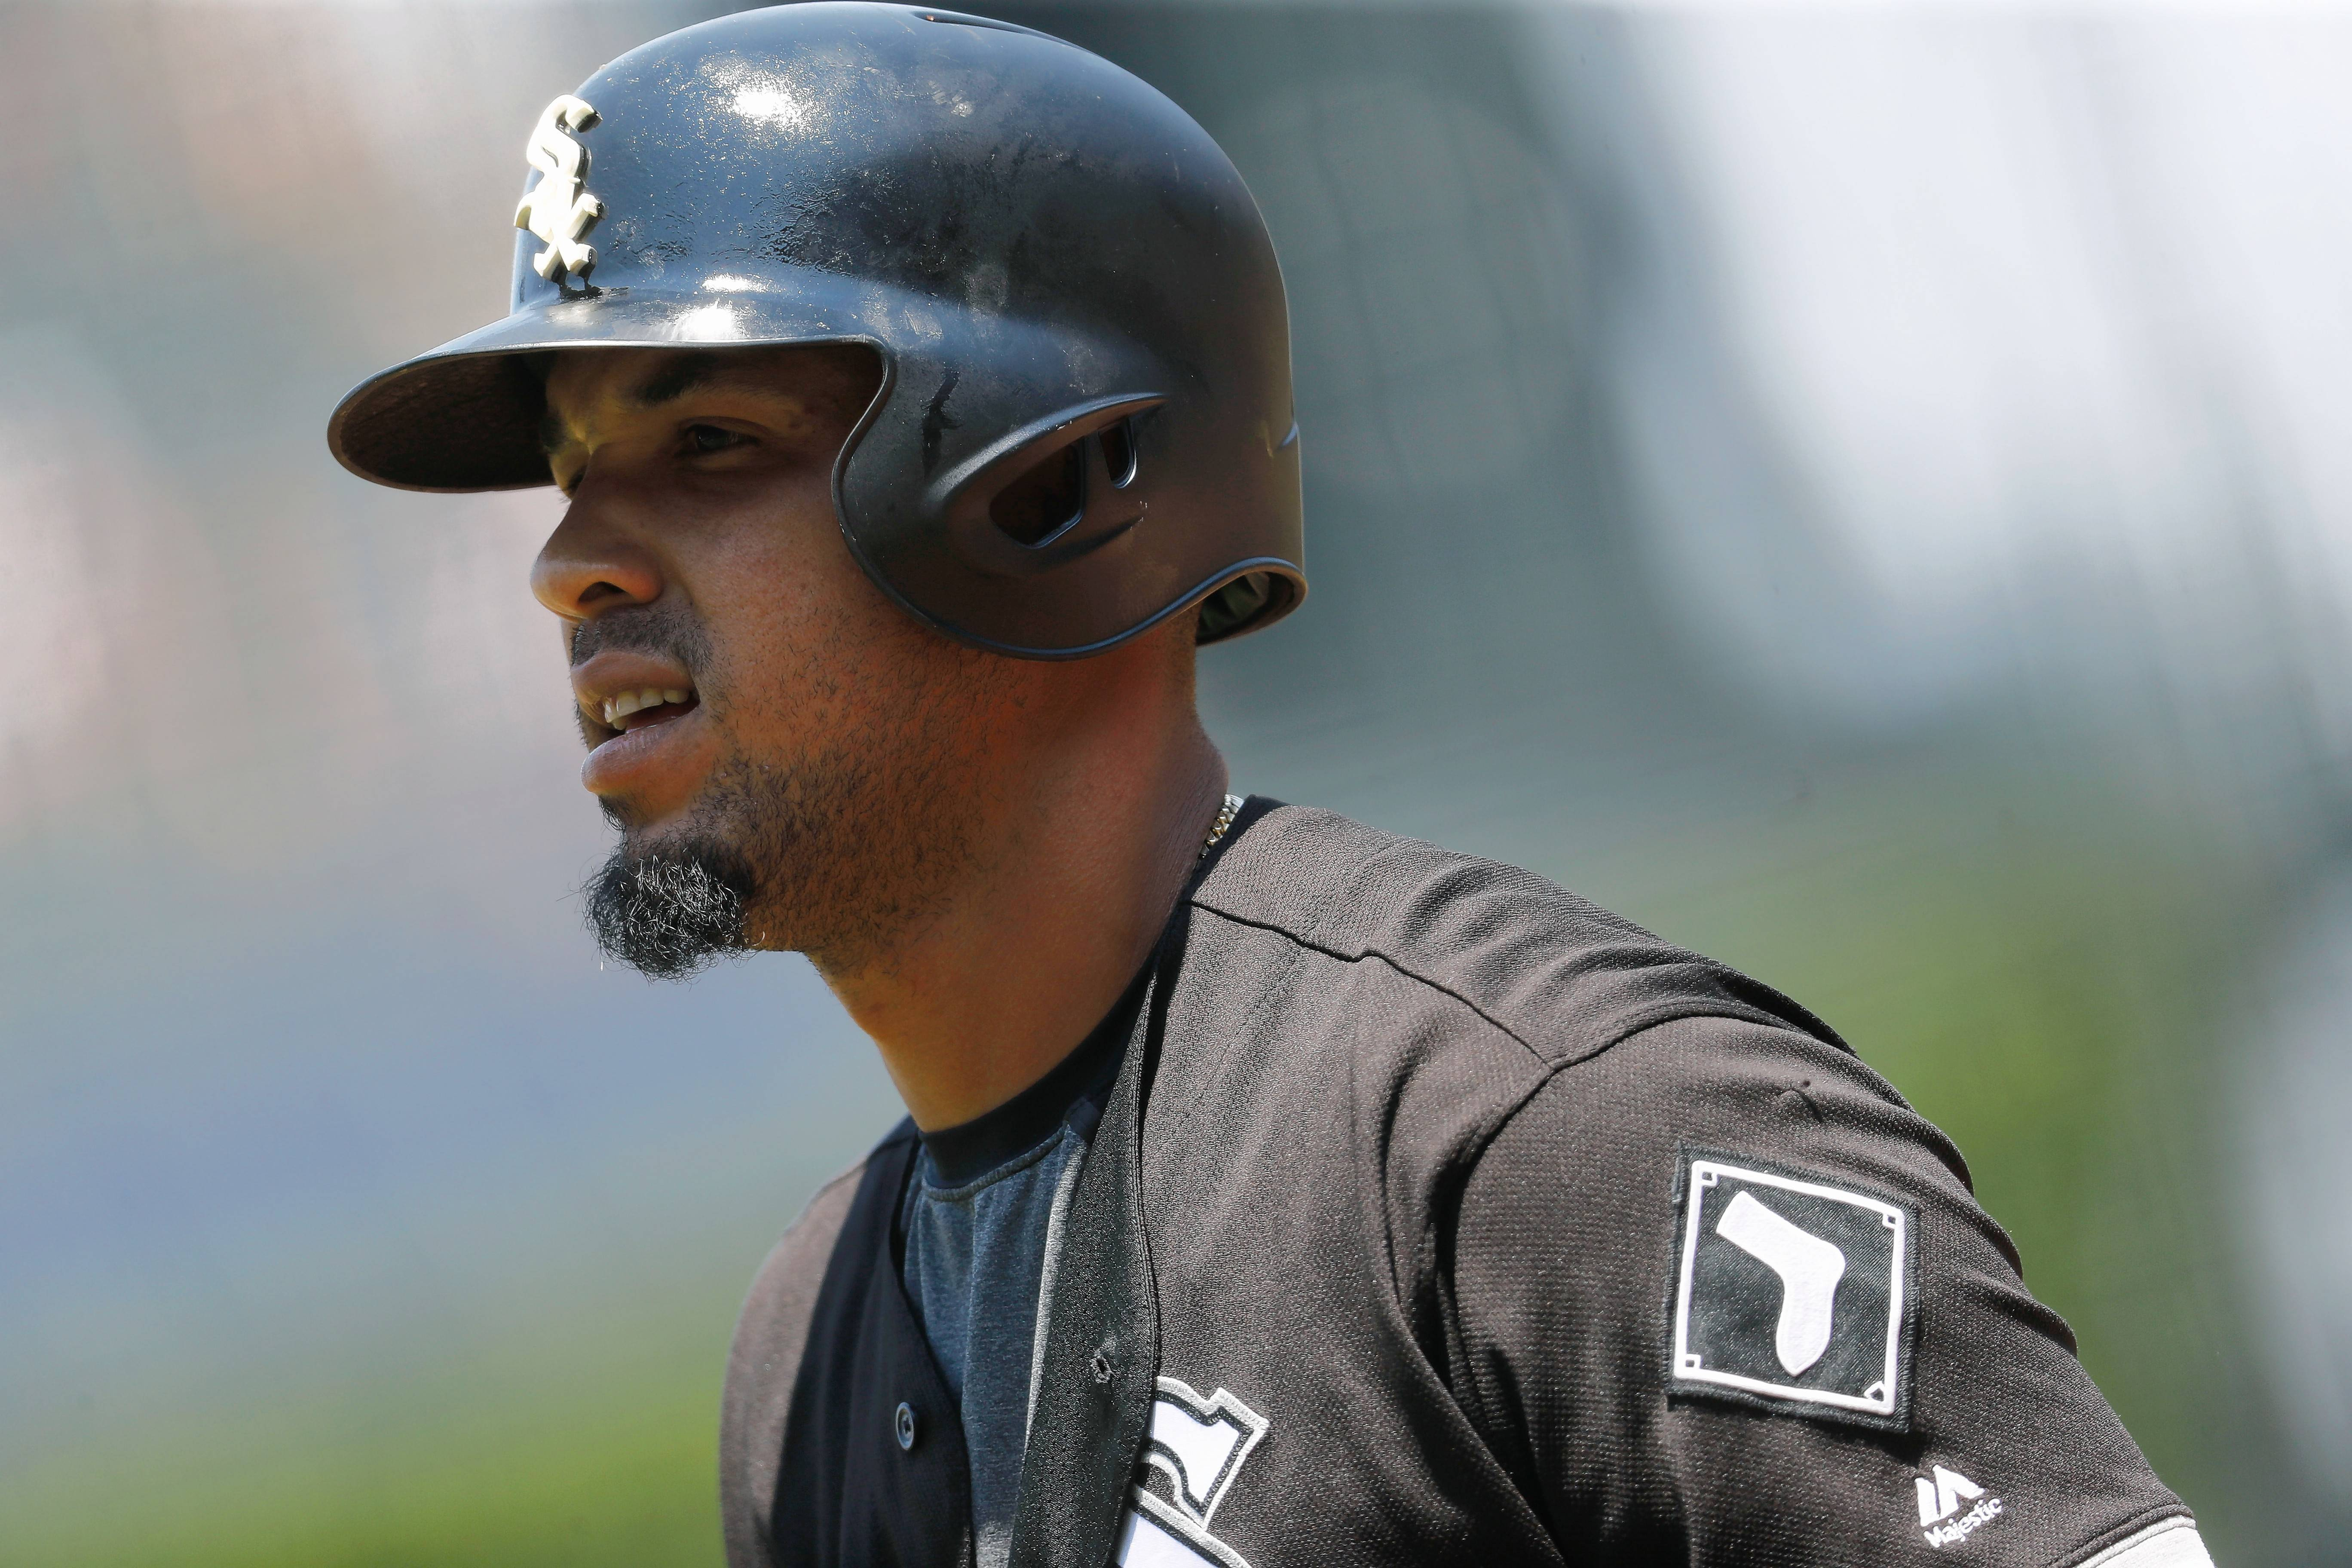 Chicago White Sox slugger Jose Abreu will be 31 next season, and many of his teammates will be in their early 20s. If they can get a couple of good prospects in return, the Sox may trade Abreu.